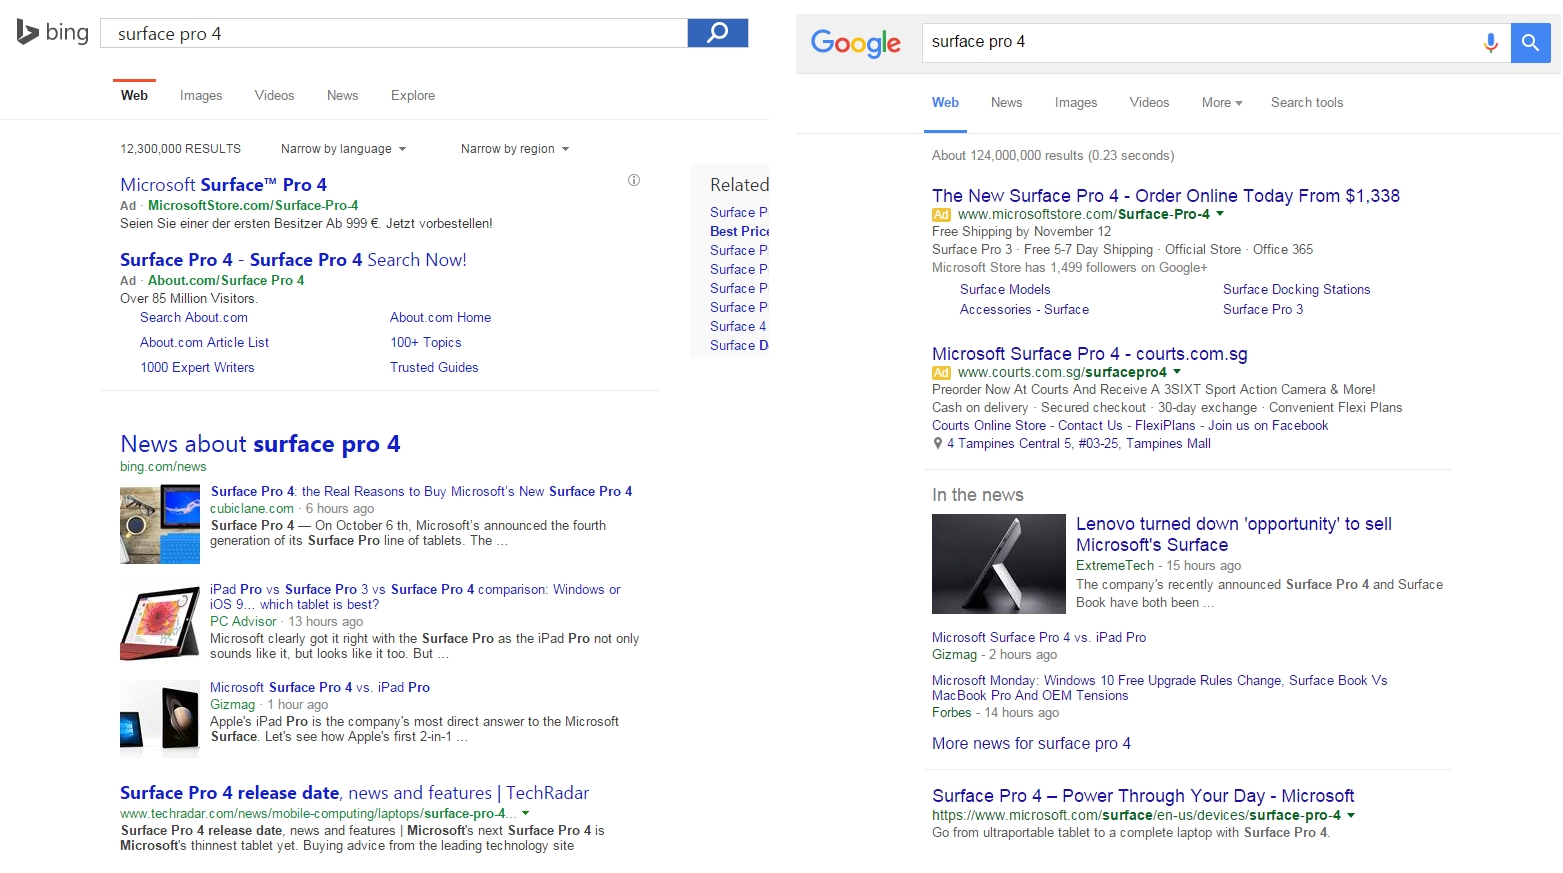 bing-vs-google-surface-pro-4-october-2015